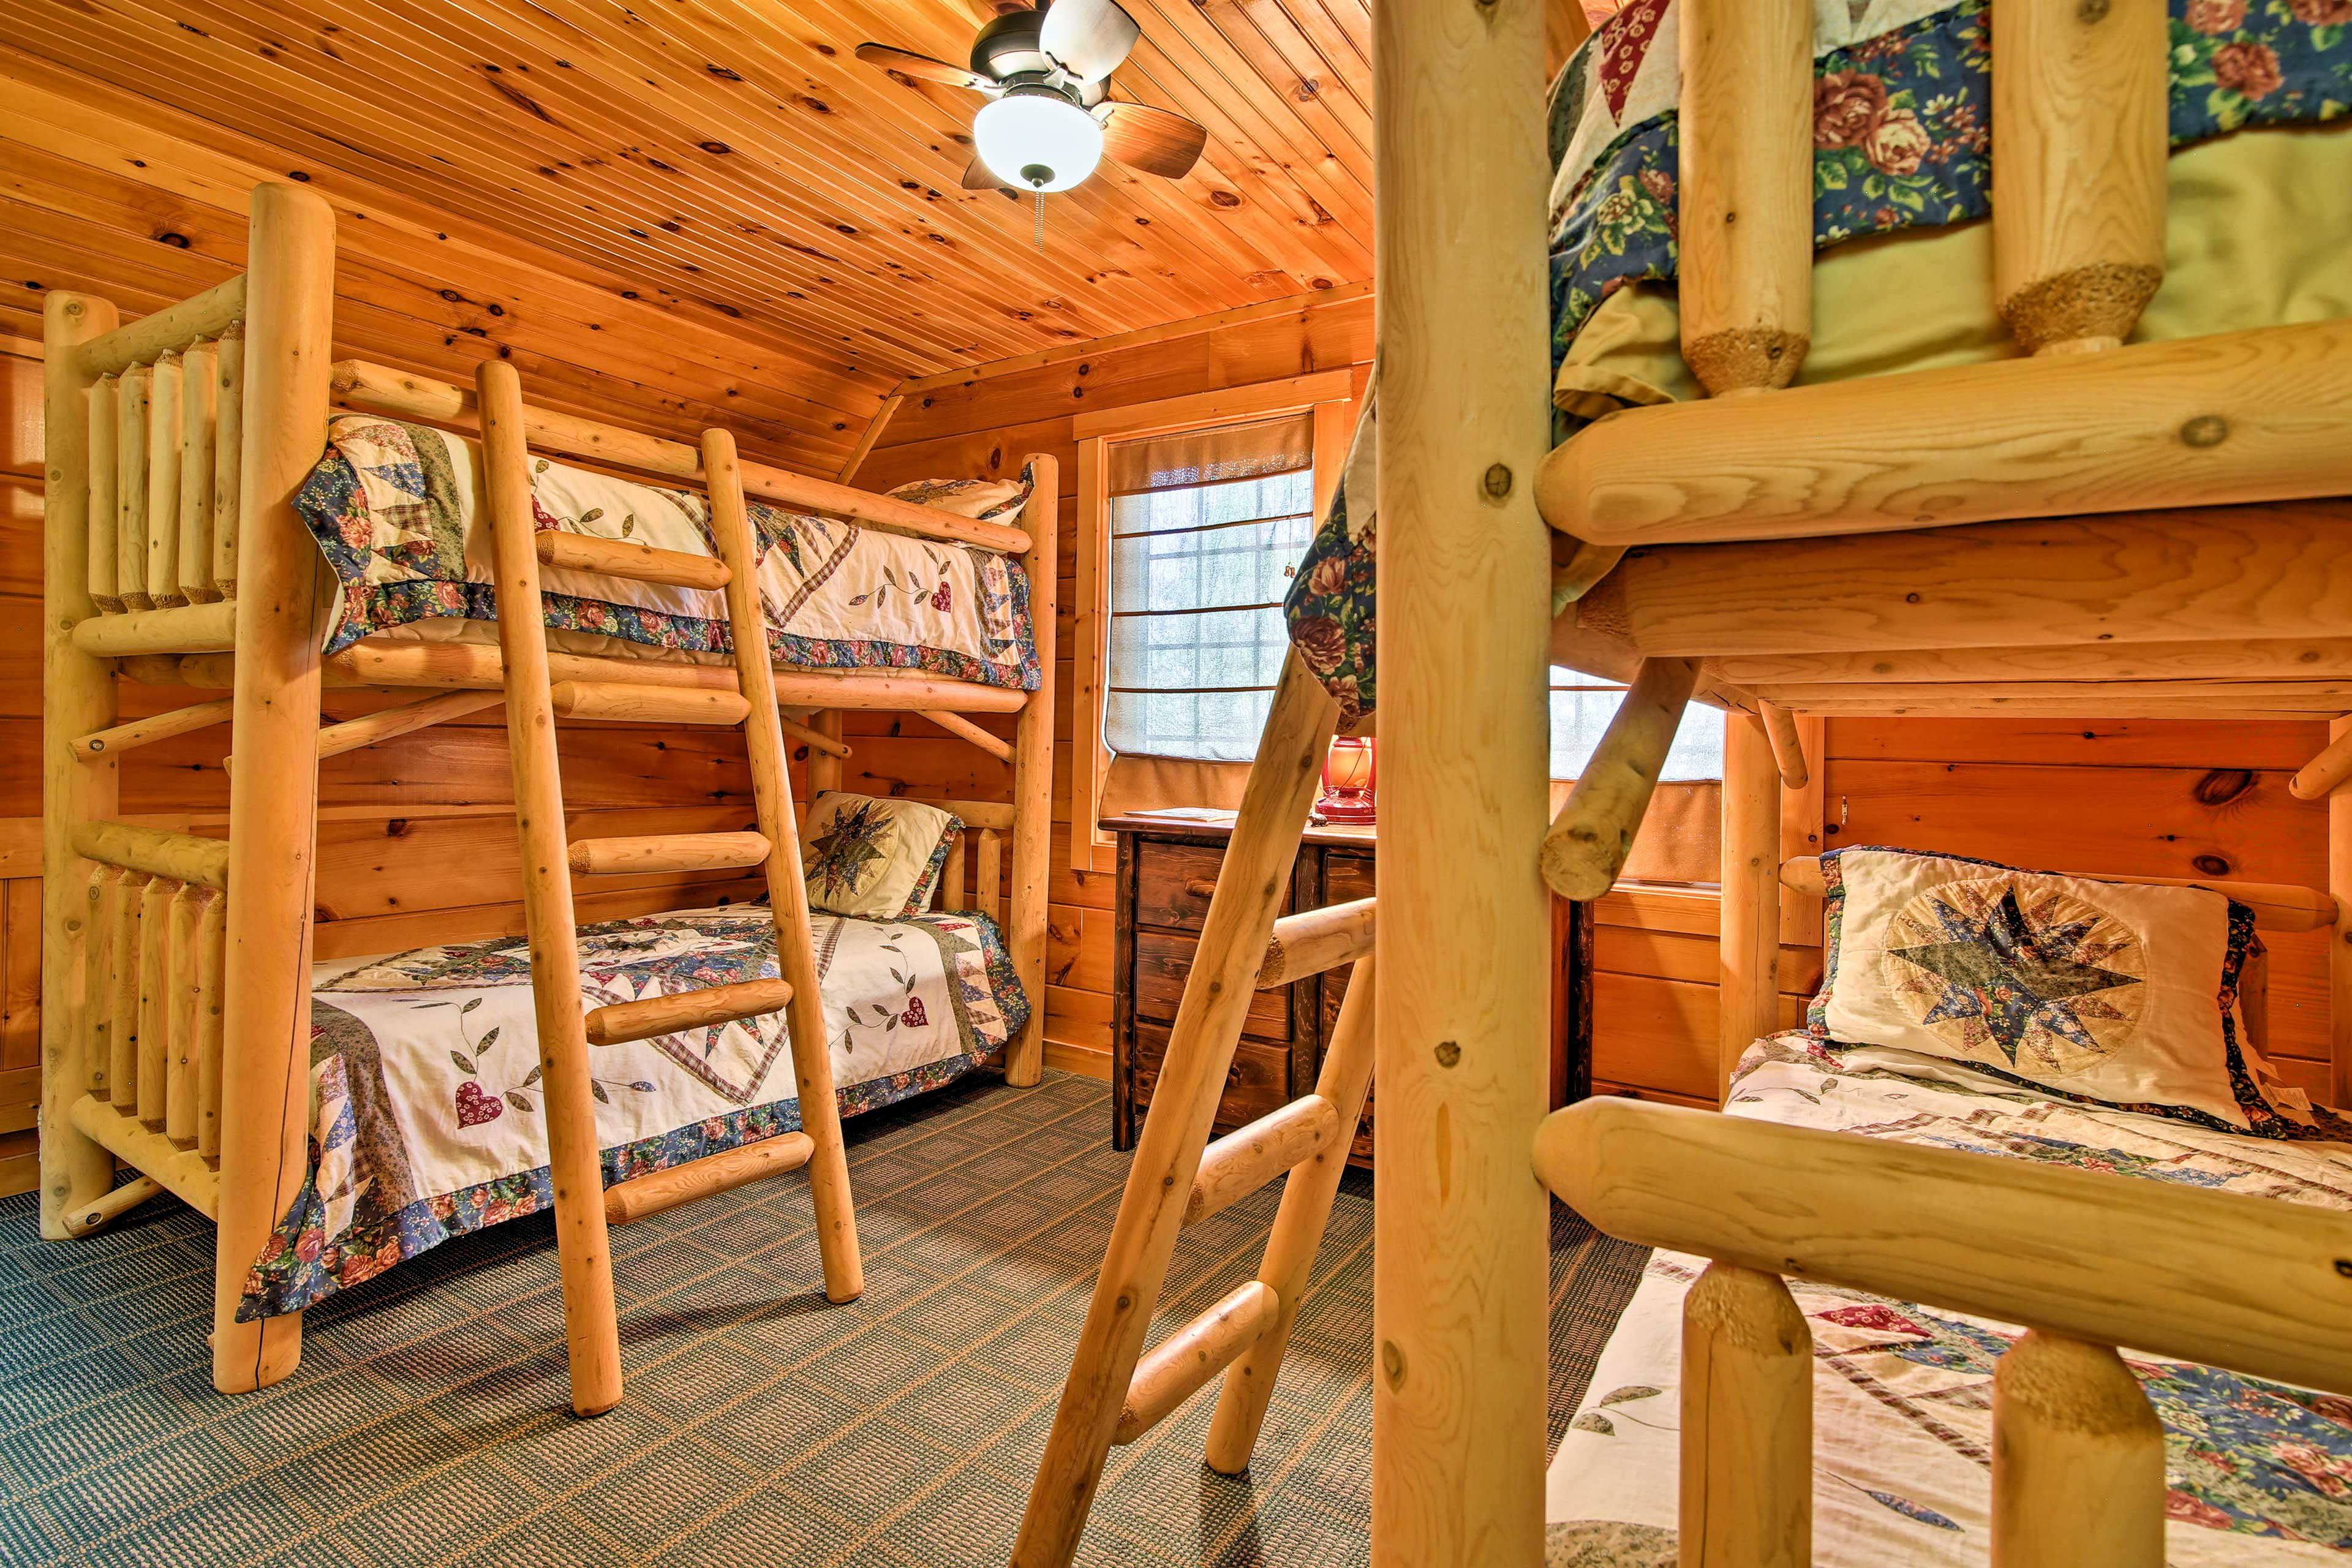 The kids will love a space all their own in the third bedroom.